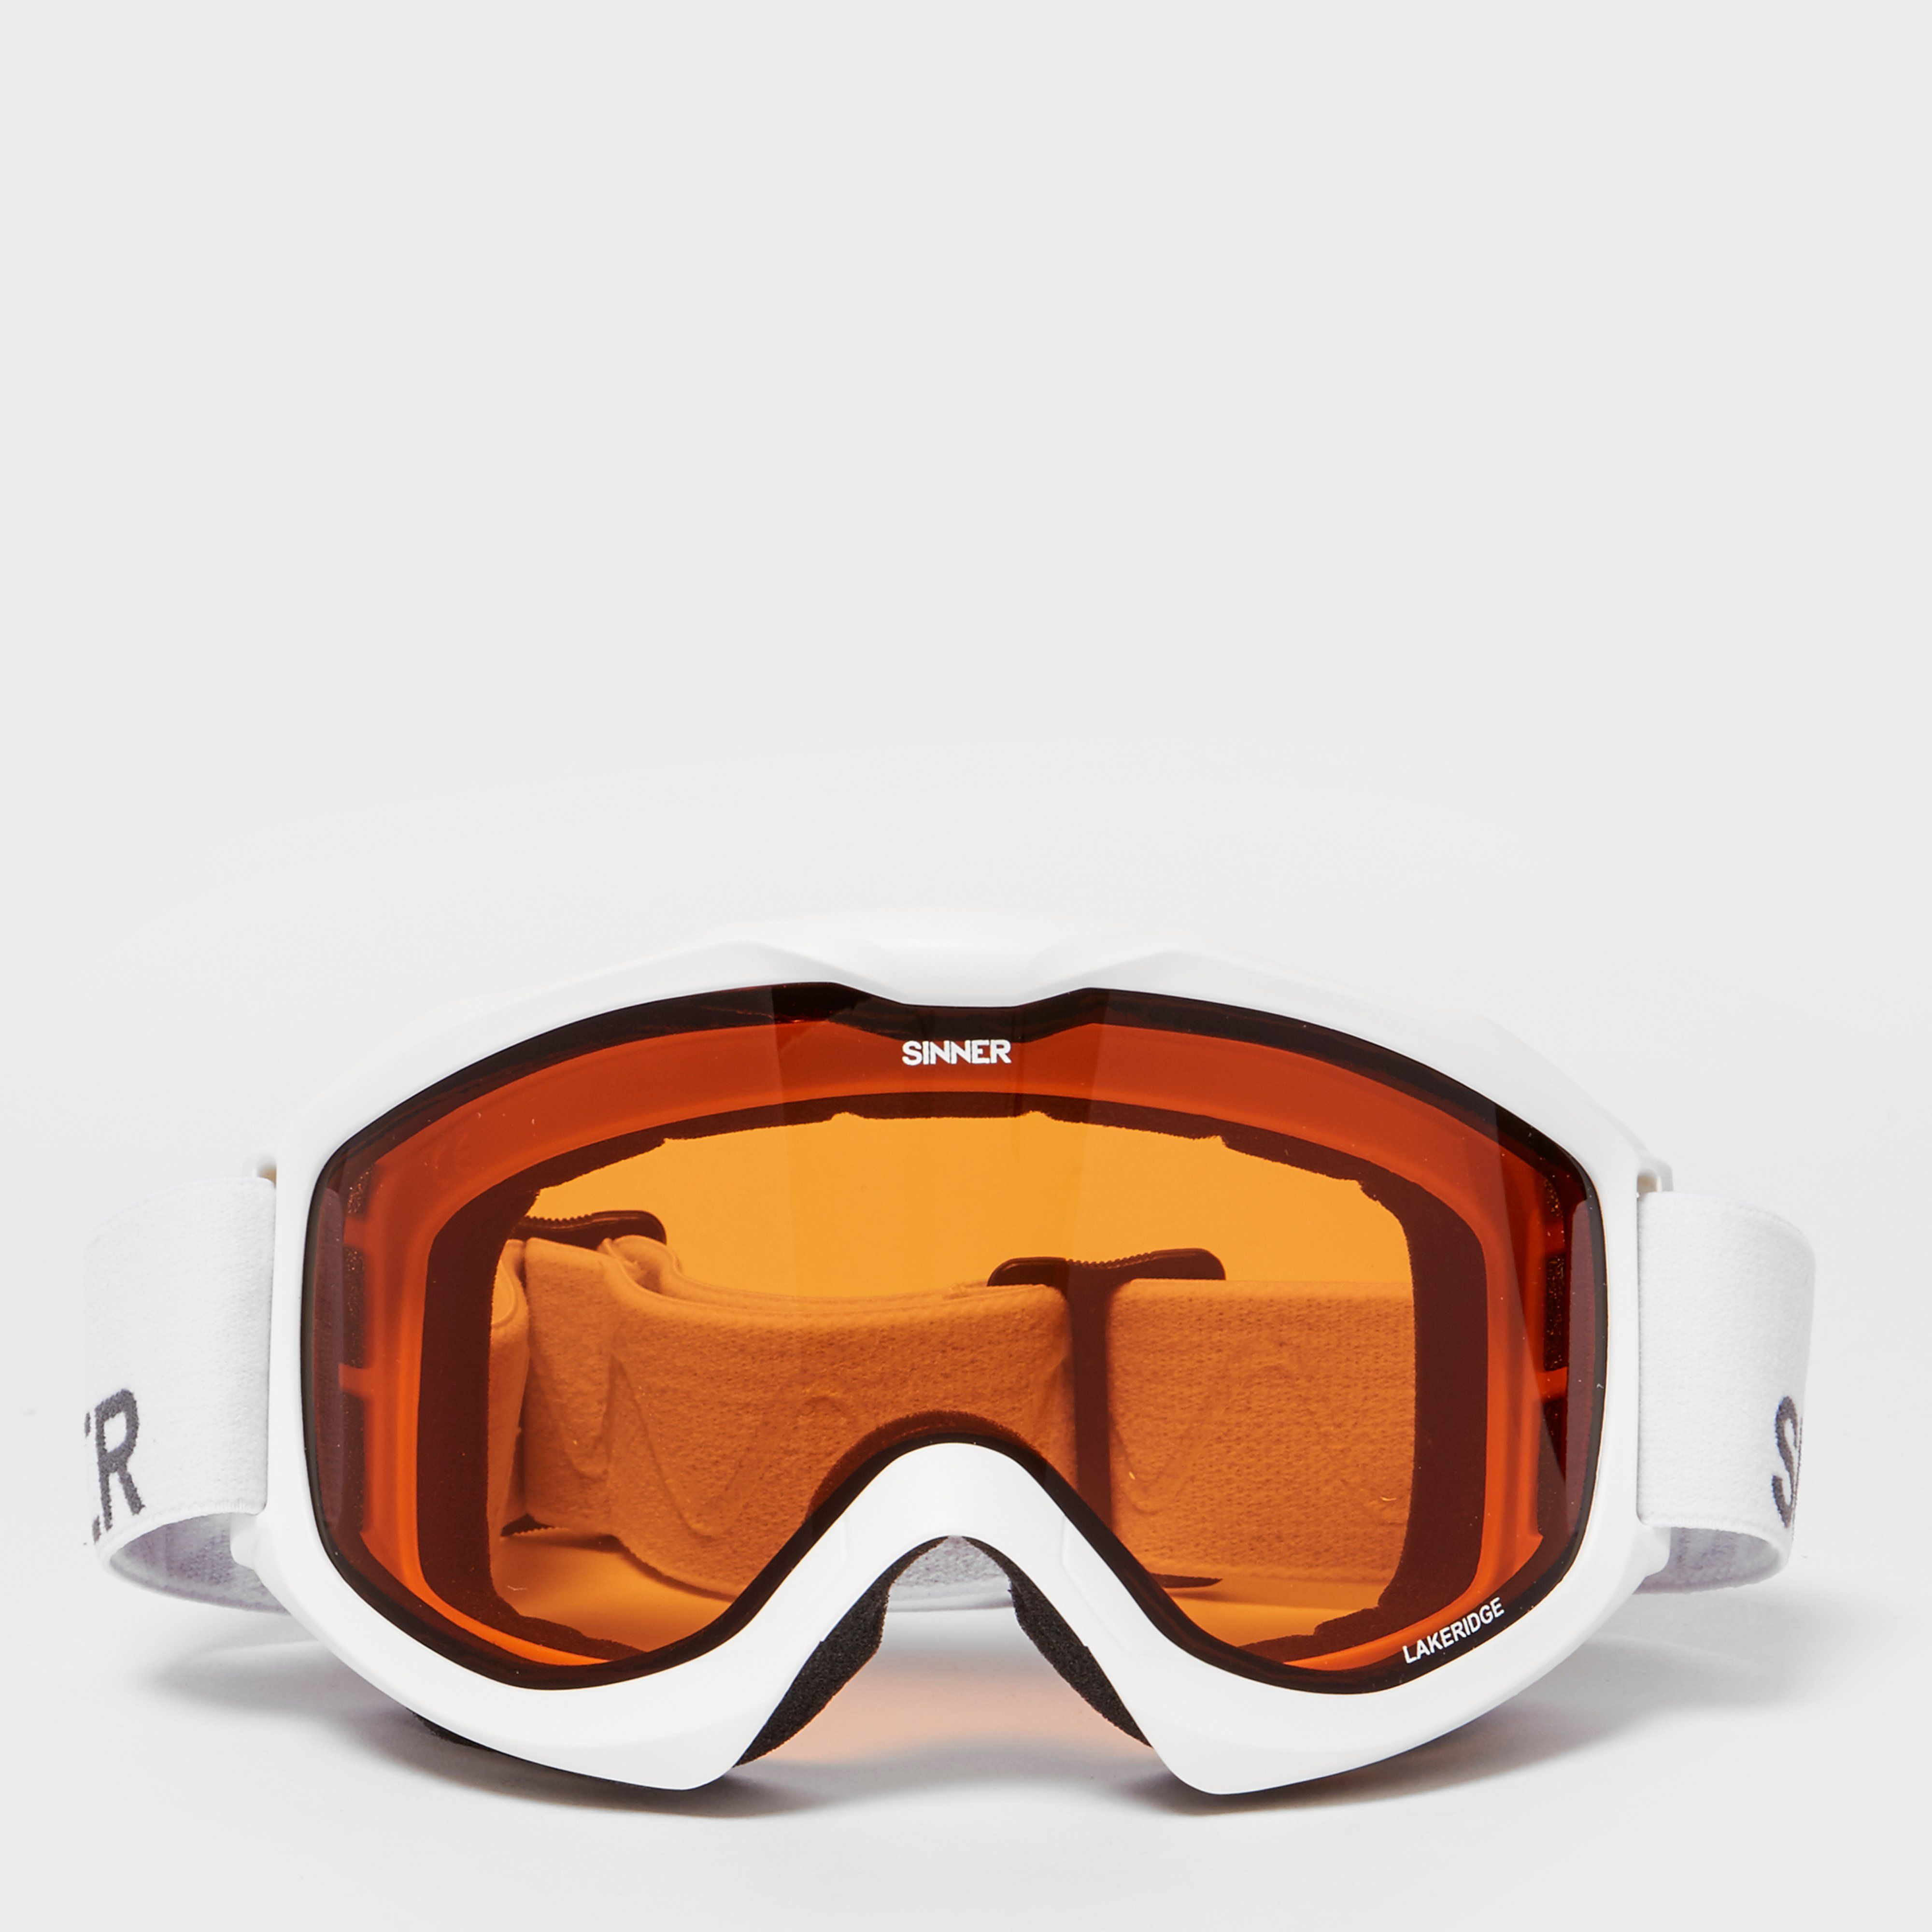 SINNER Lake Ridge Goggles